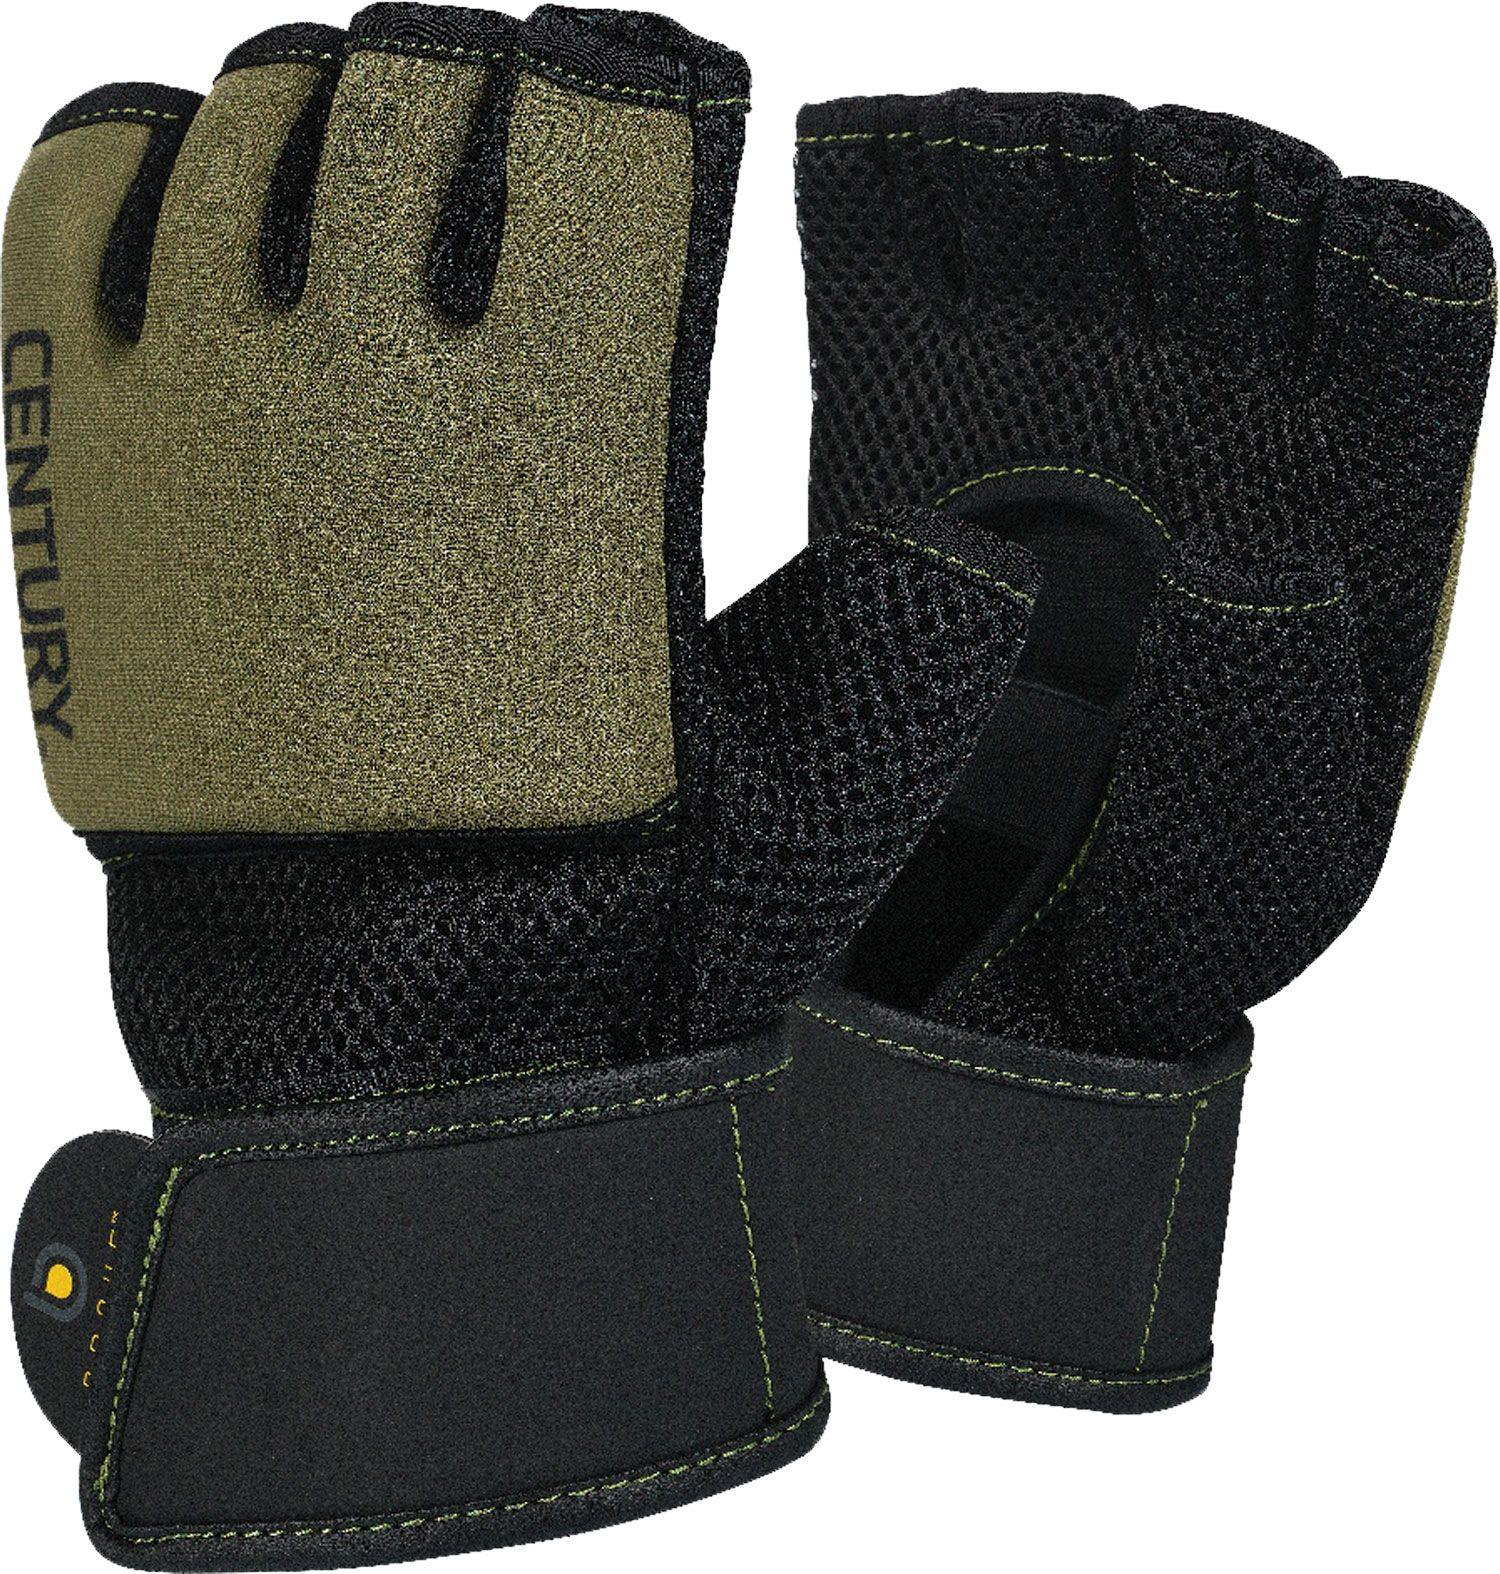 Brave Gel Training Gloves, Black/Olive, swatch